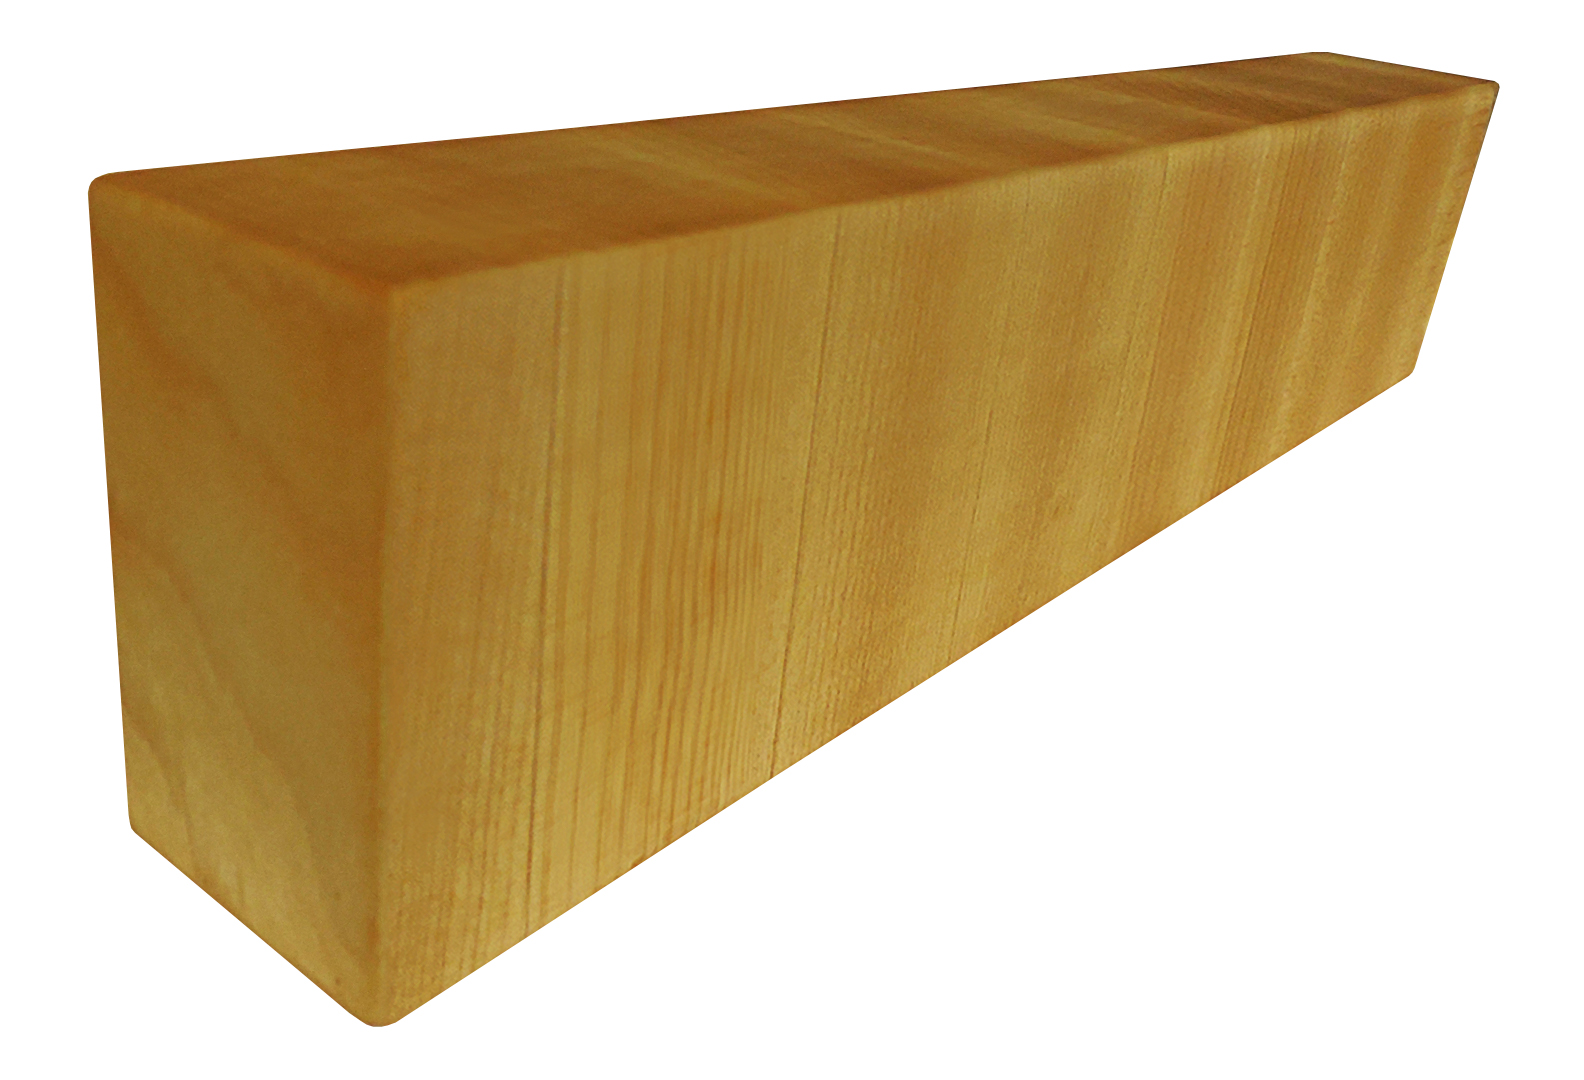 squared-edge-butcher-block-f.jpg